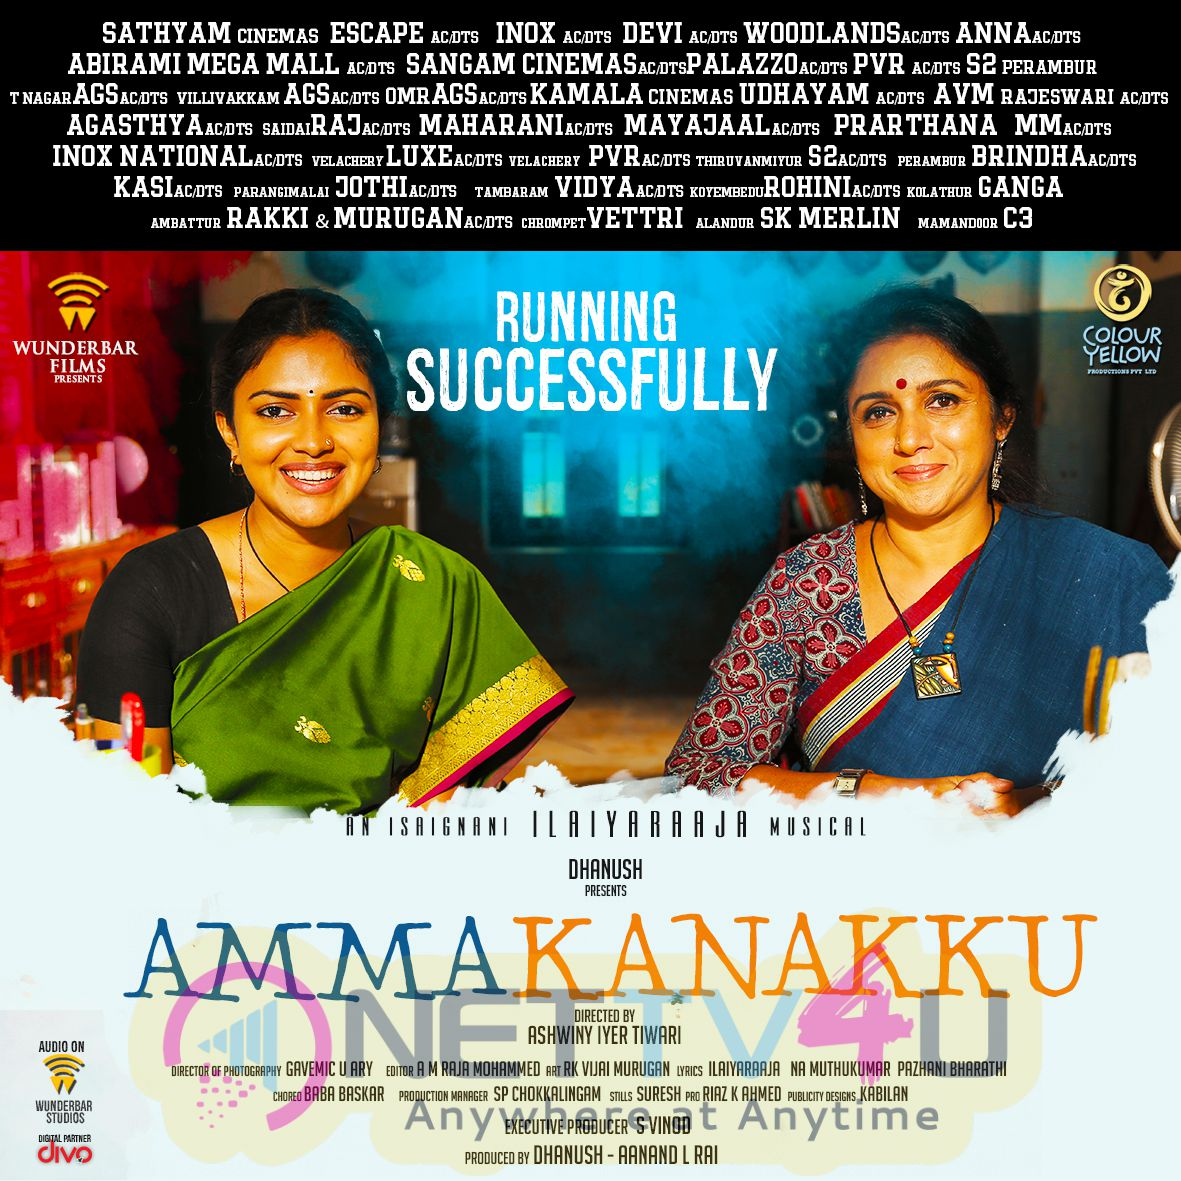 Tamil Movie Amma Kanakku Online Good Looking Posters